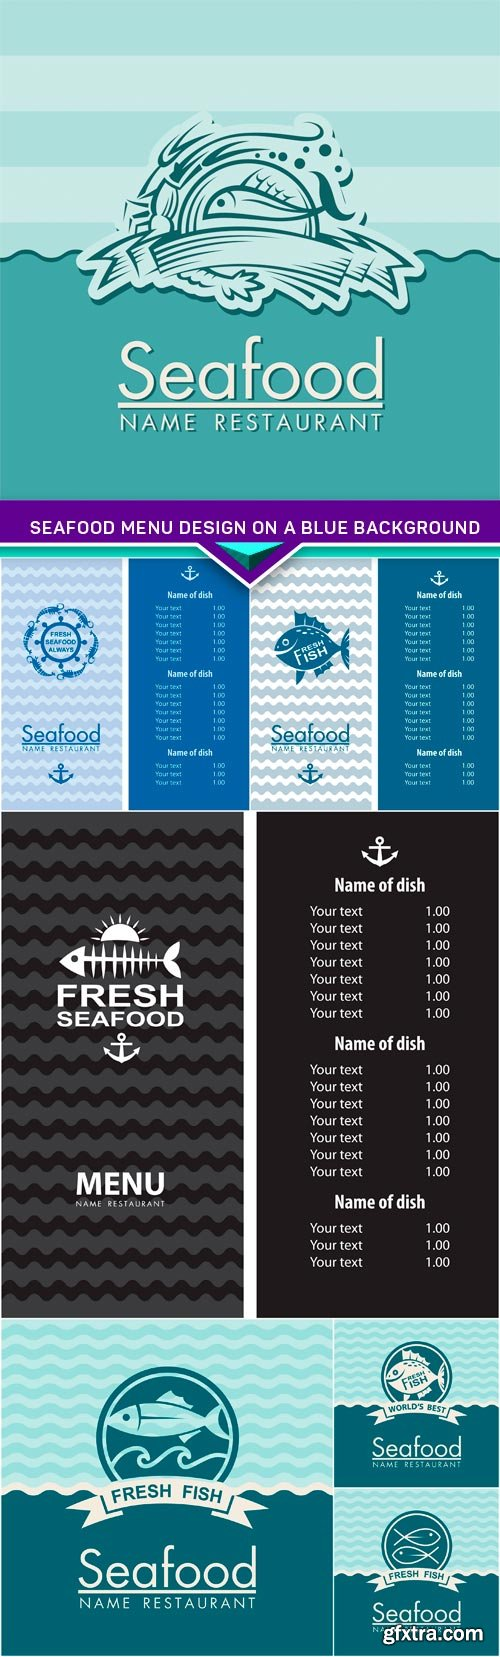 Seafood menu design on a blue background 7x EPS